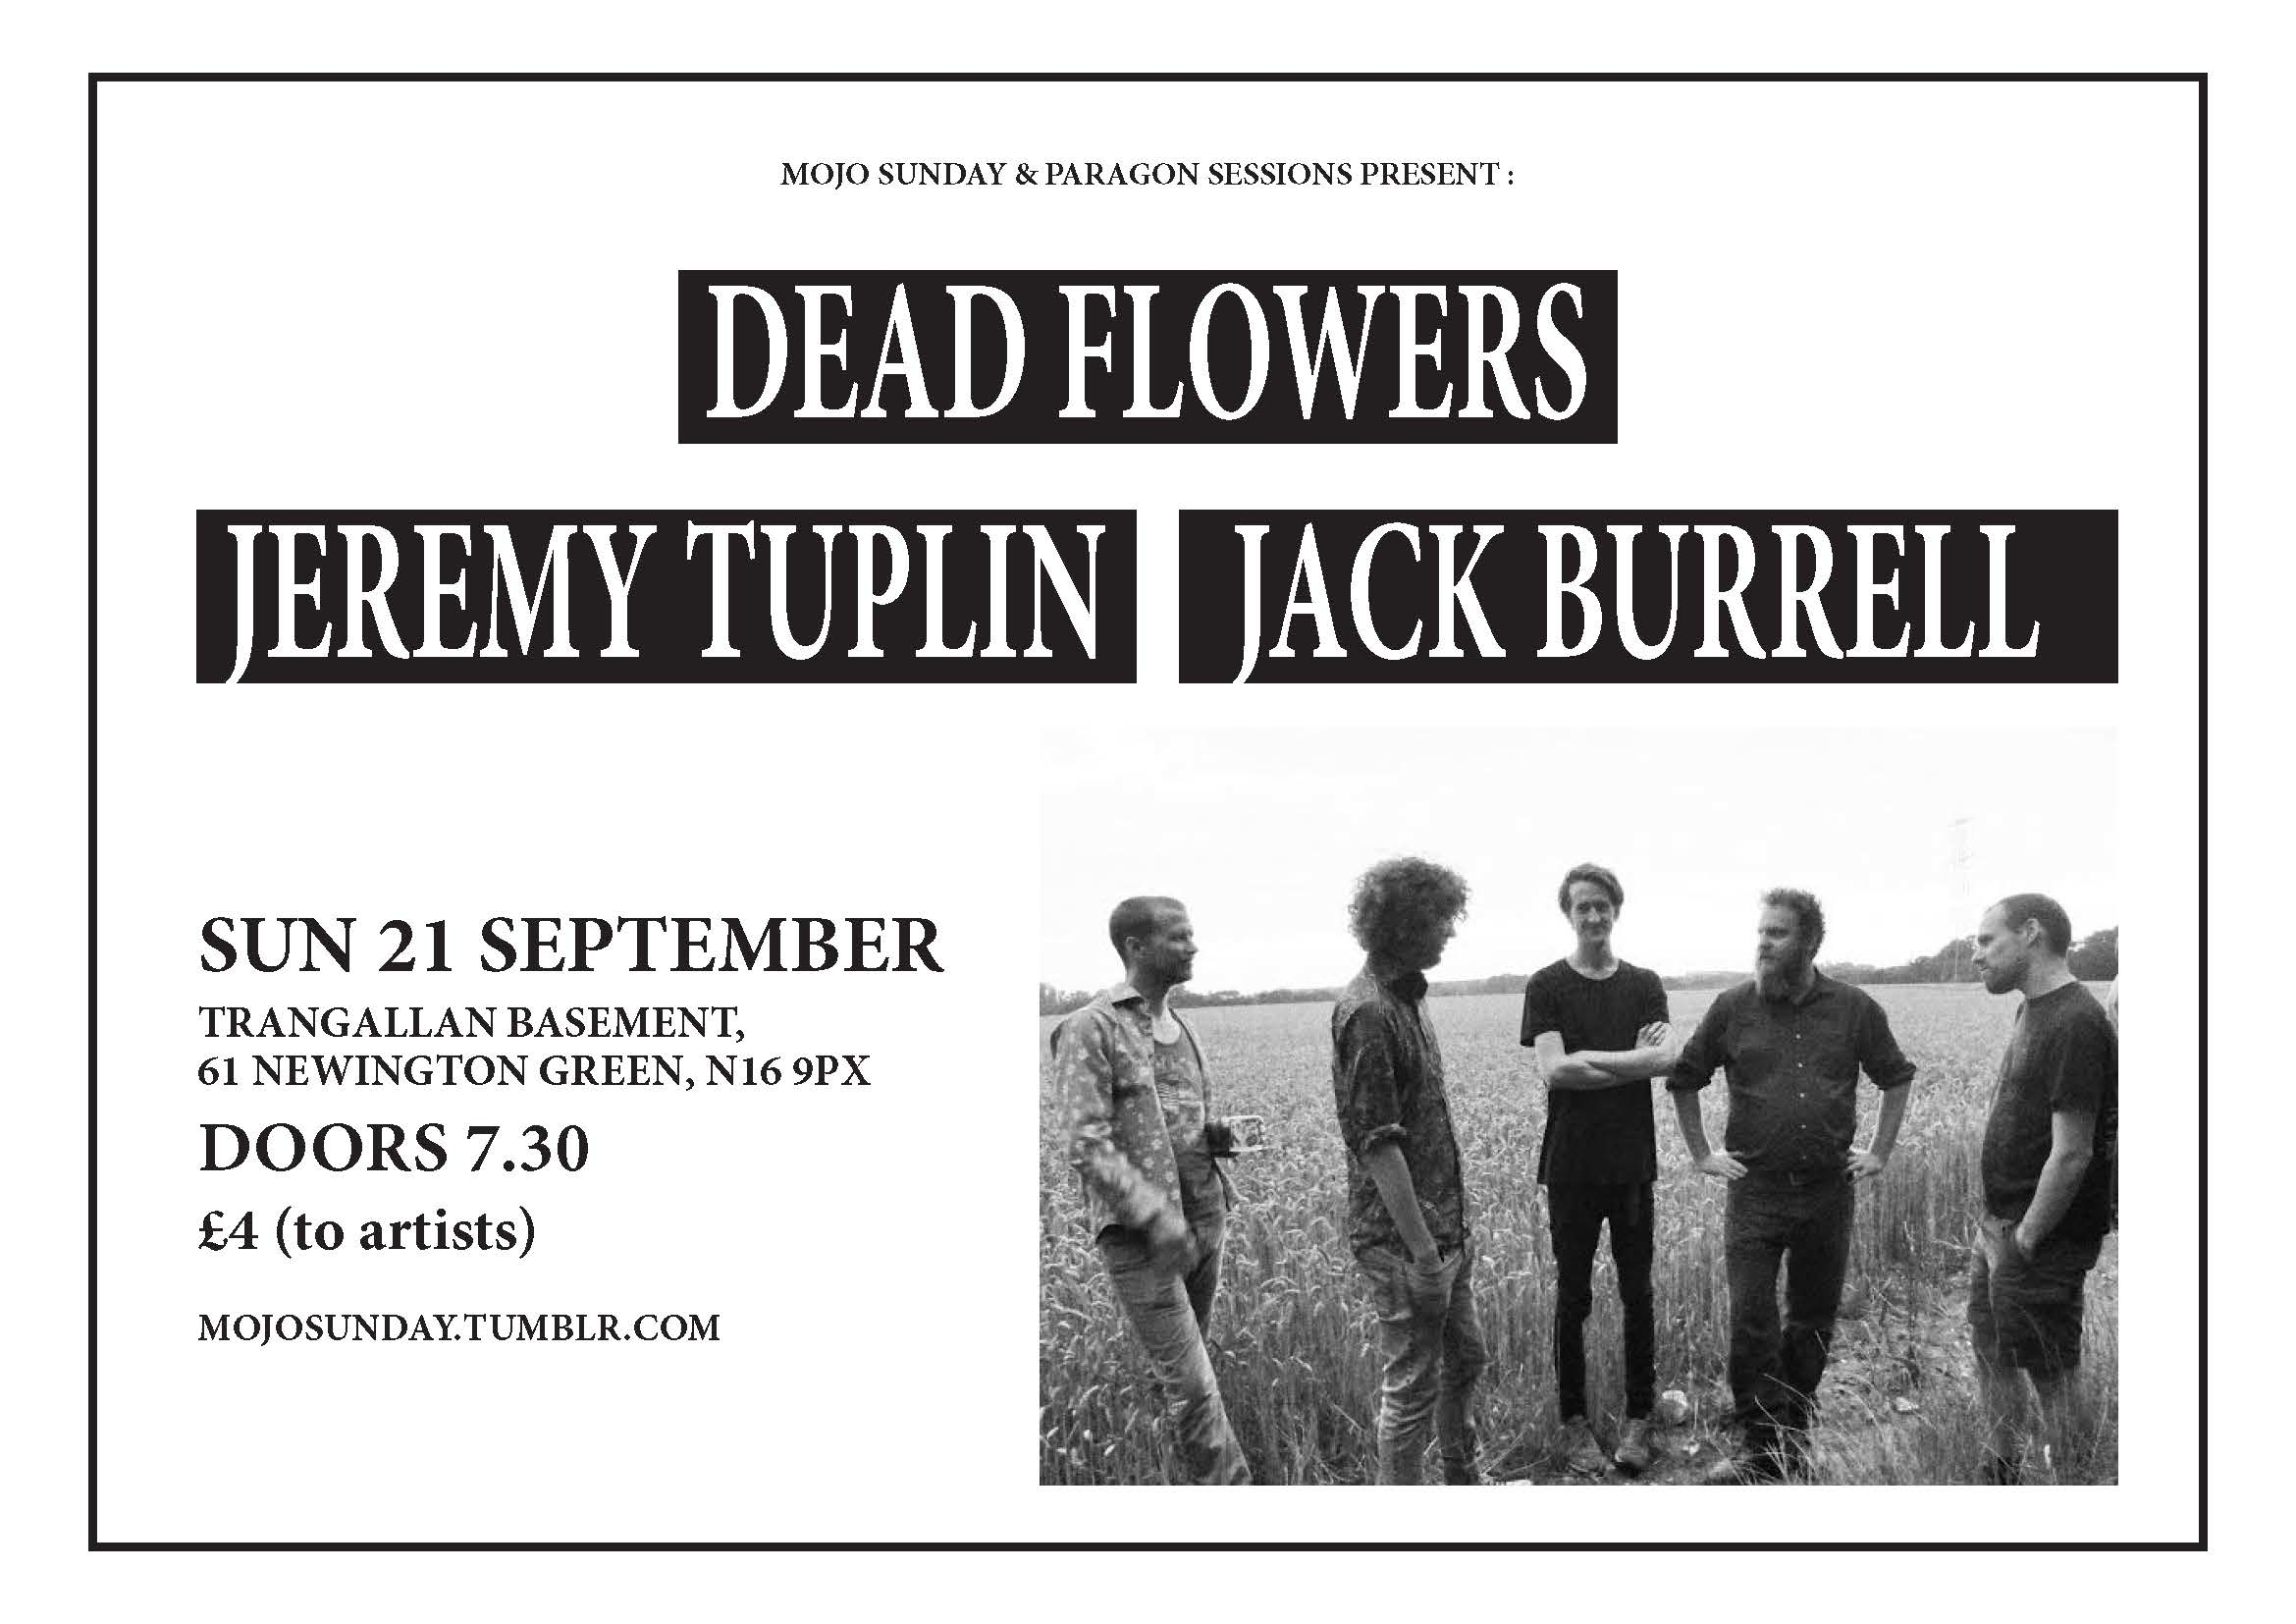 Mojo Sunday presents: Dead Flowers + Jack Burrell + Jeremy Tuplin